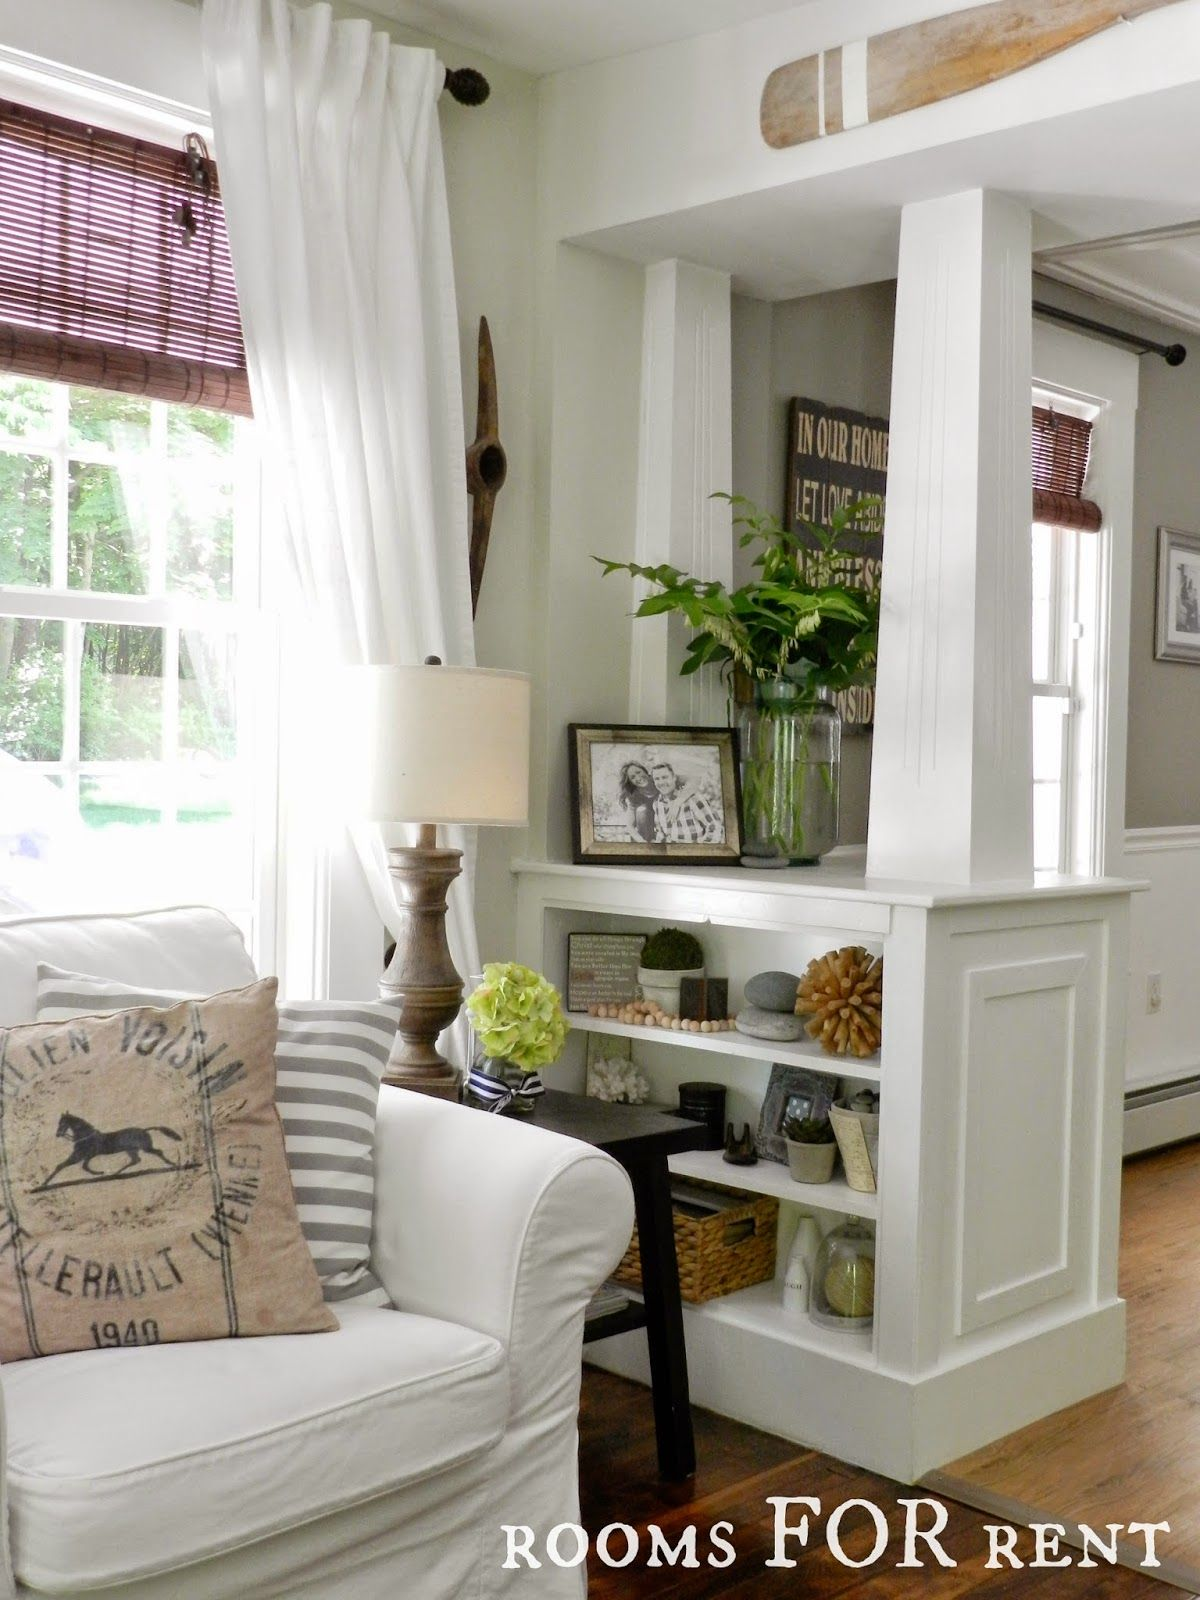 White Columns With Built In Shelves Great To Divide Up A Room And